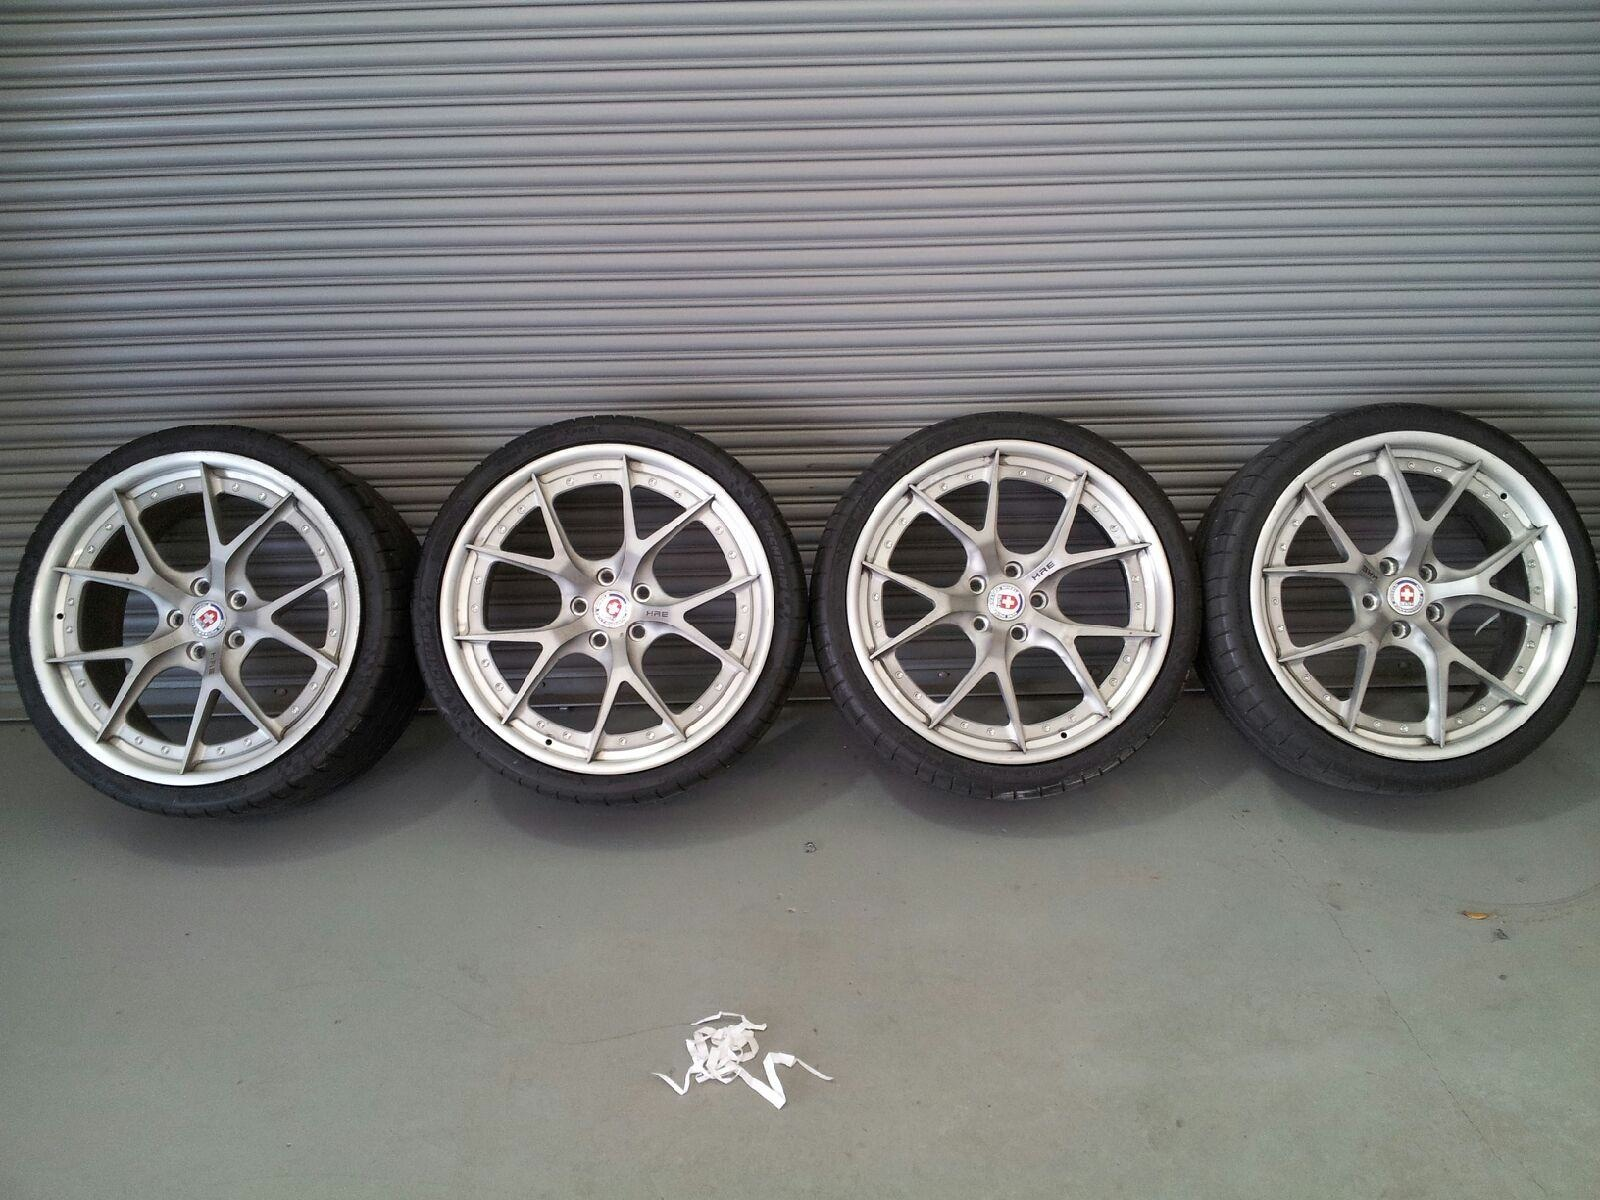 TX 2006 2013 lexus gs300 gs350 used HRE S101 wheels and